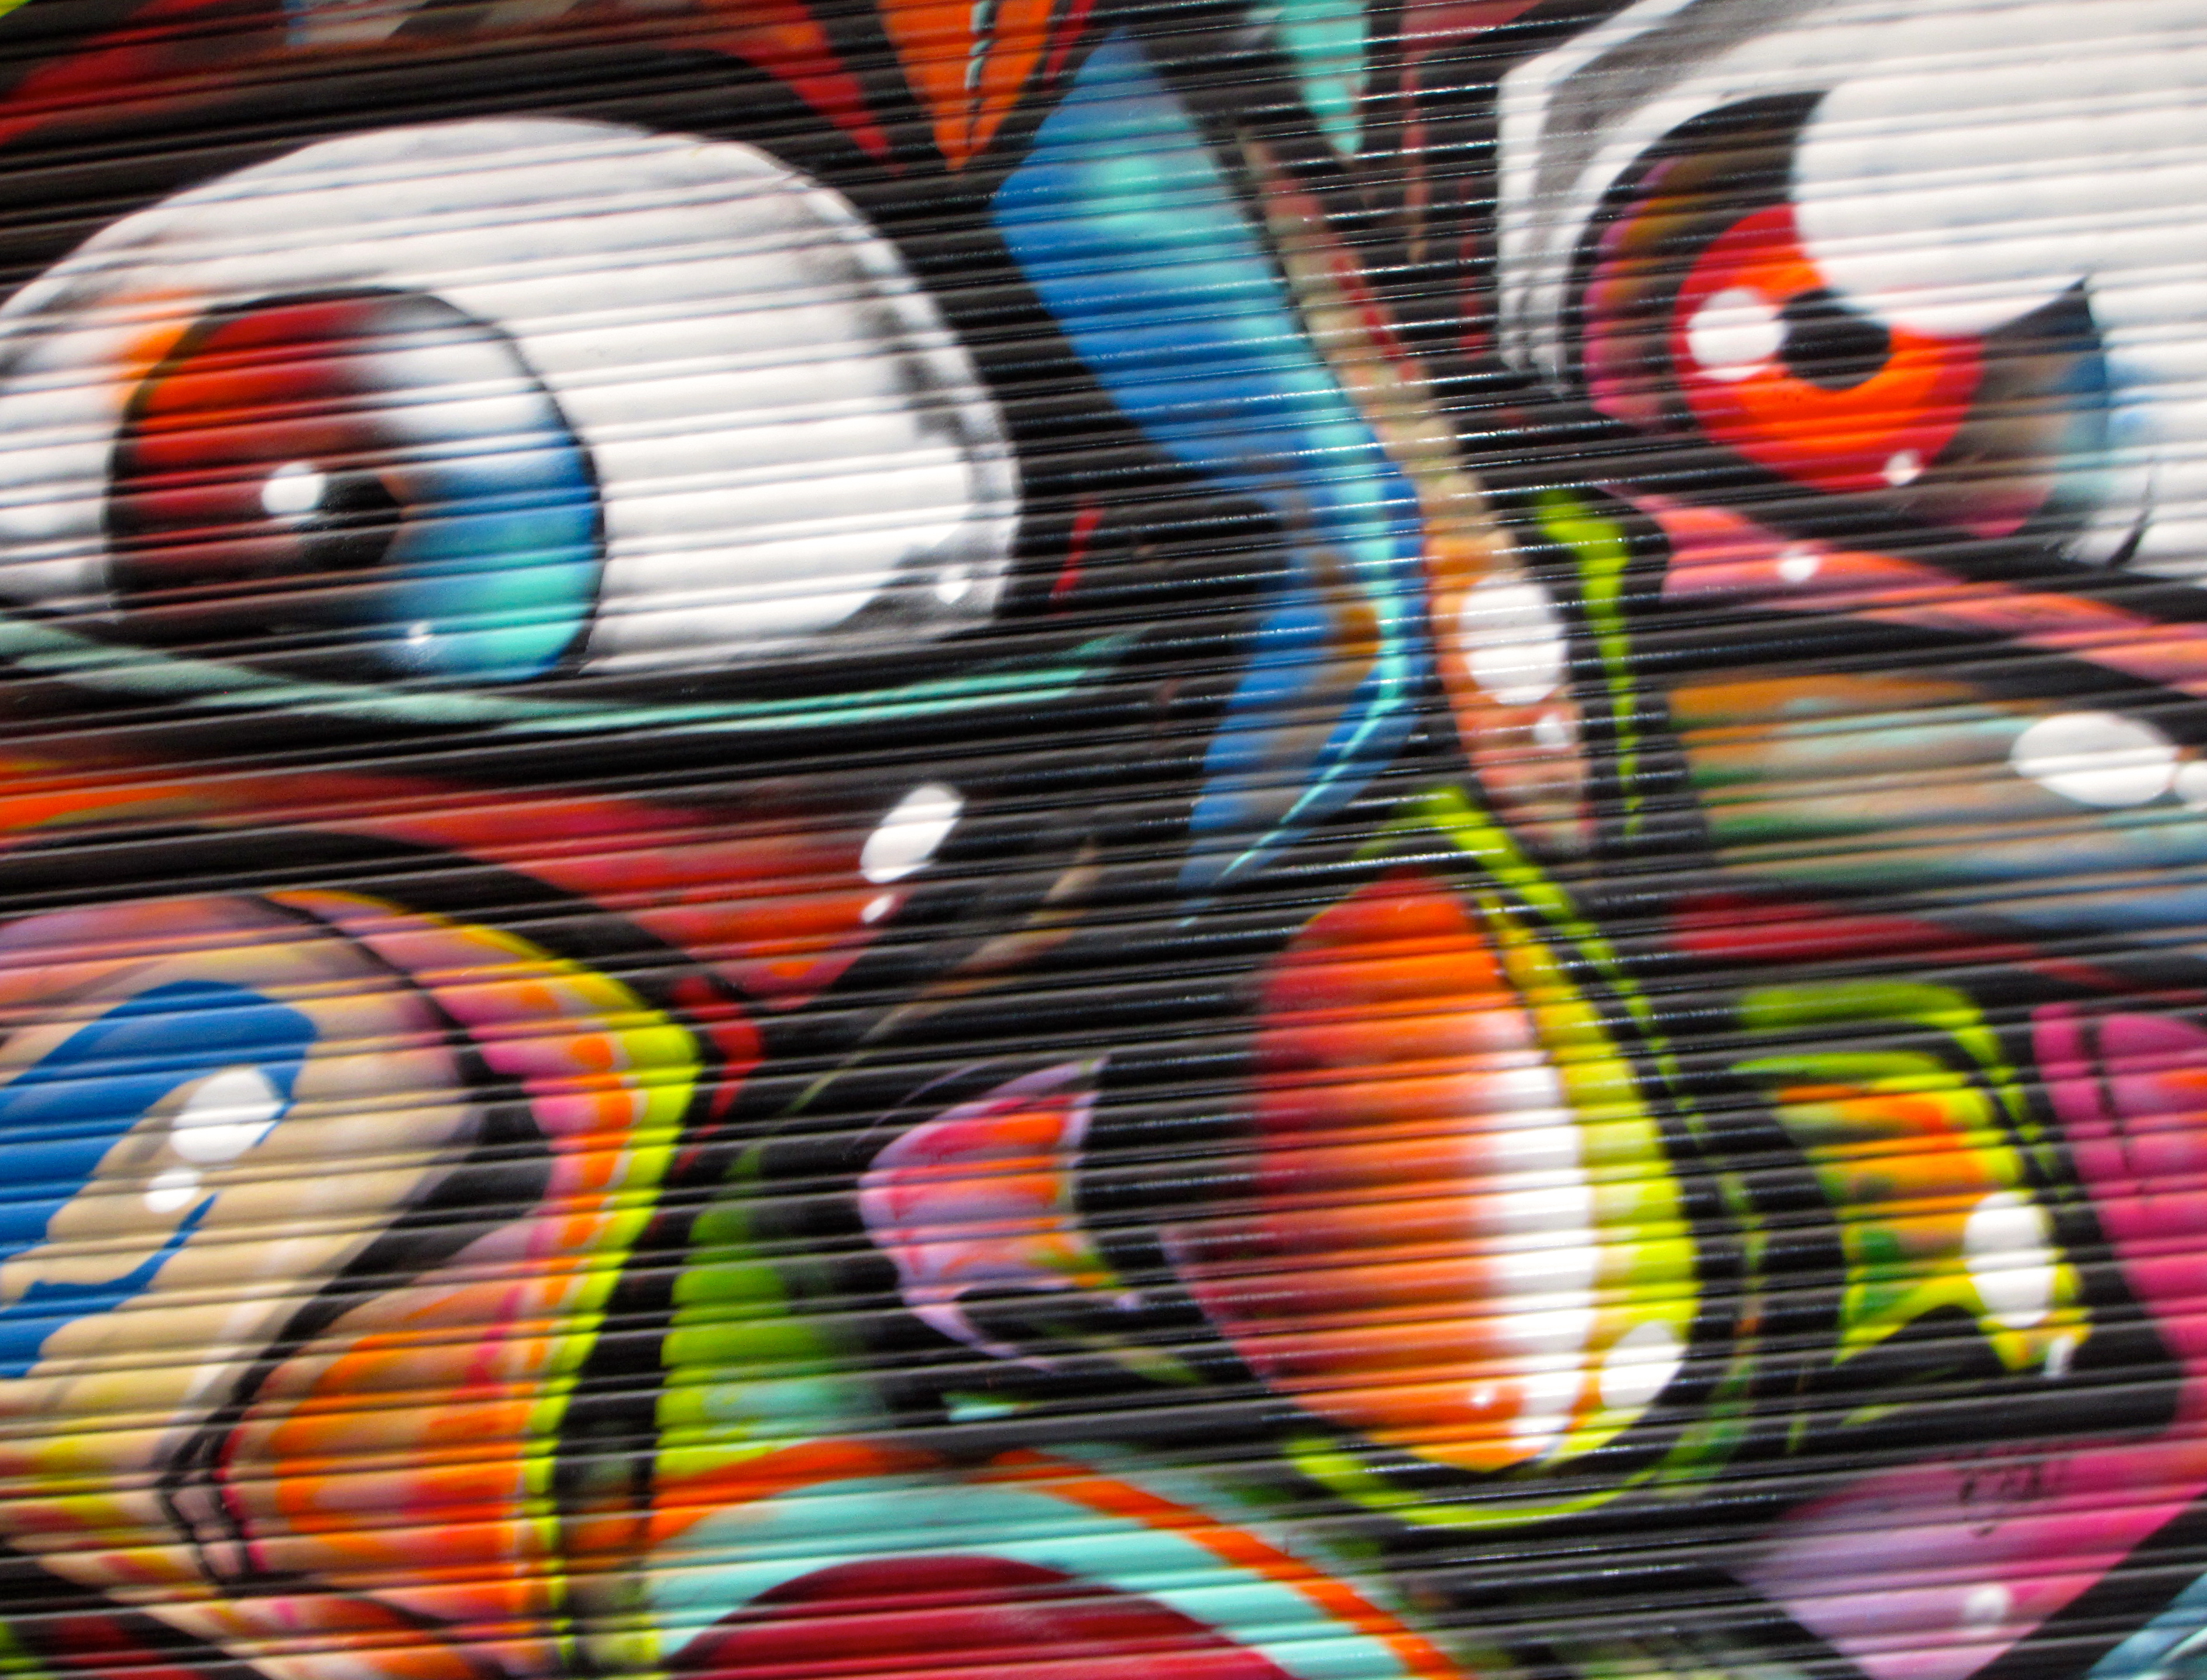 Graffiti art for sale australia - This Was The First Thing I Did In Australia It Turned Out To Be One Of My Favorite Things They Also Made Me Feel Very Comfortable On My First Day In Their